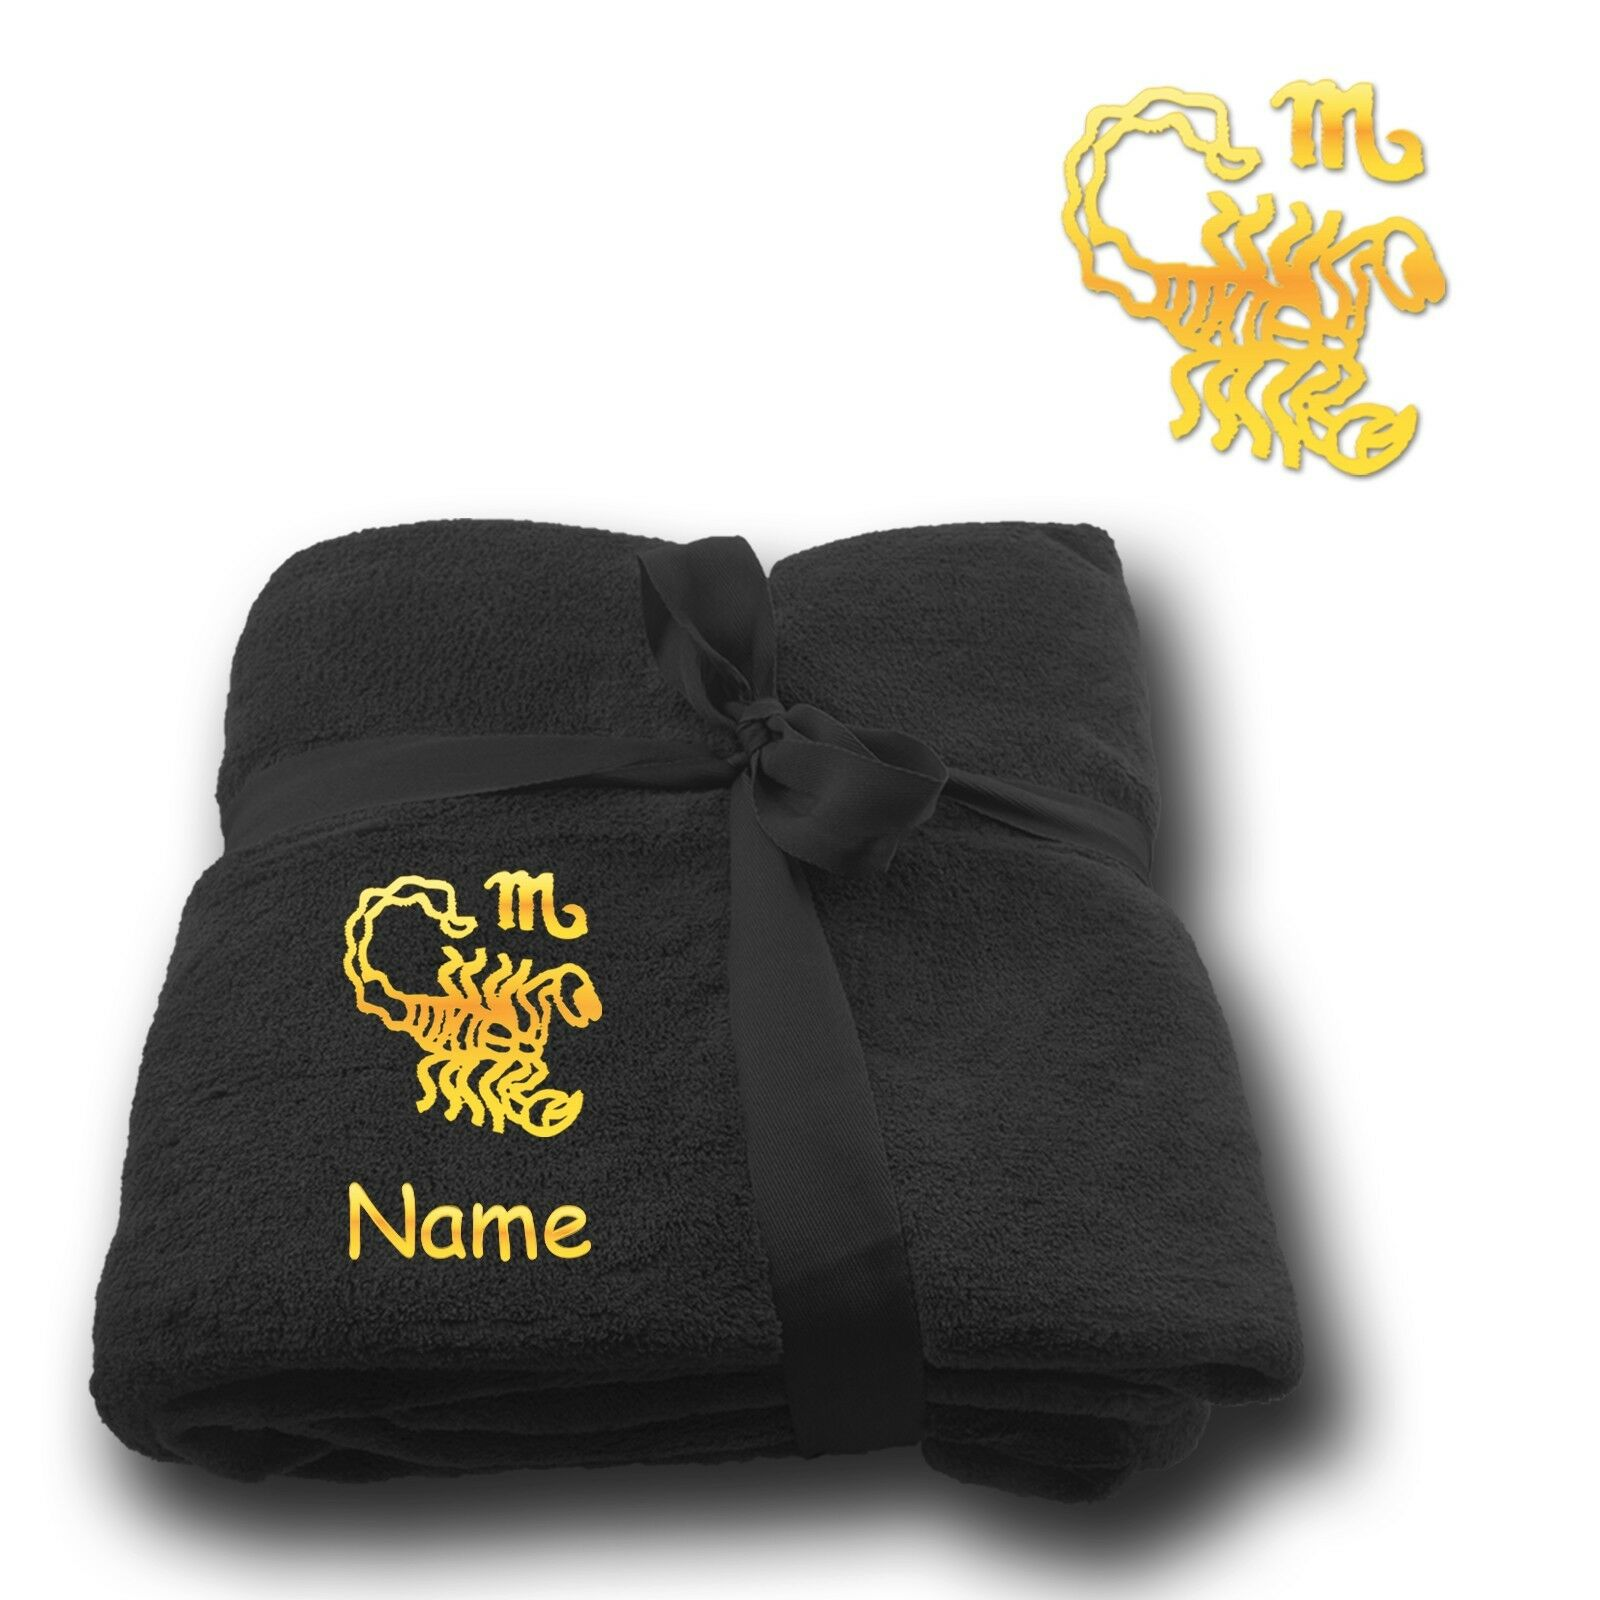 Fleecy Cuddle Blanket Blanket Embroidery Embroidered Zodiac Sign Scorpio + Name